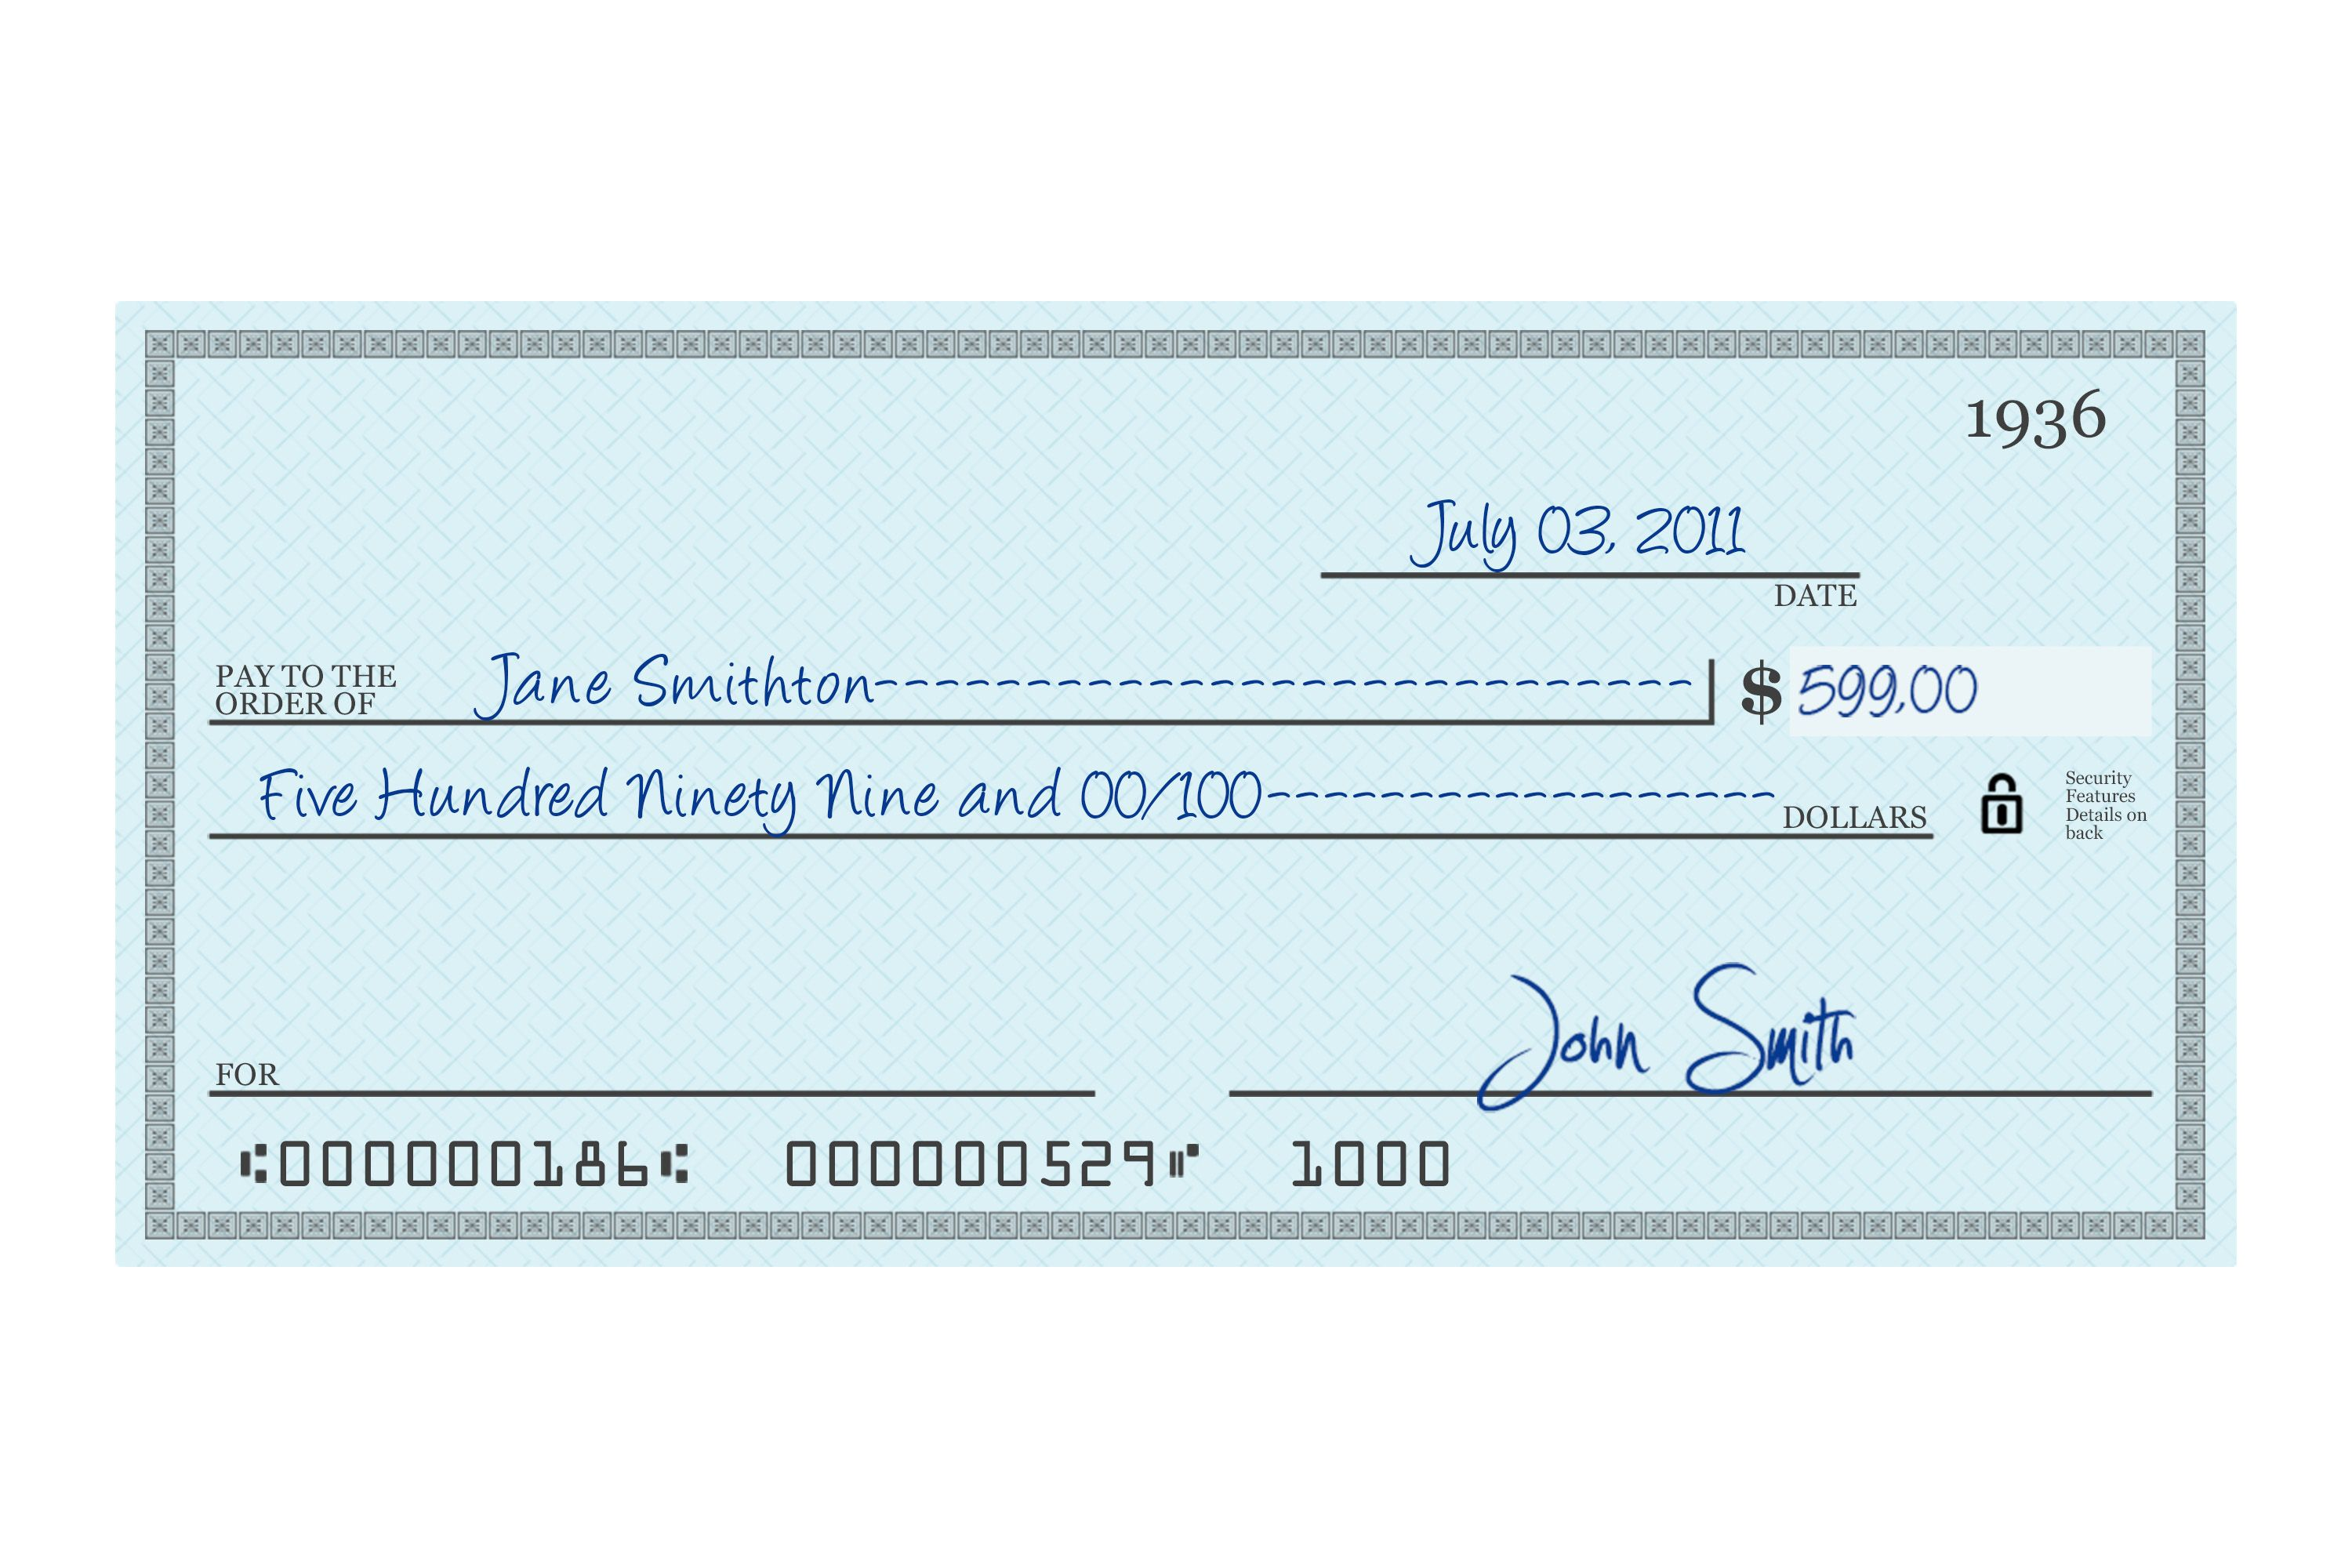 how to write $40.00 on a check